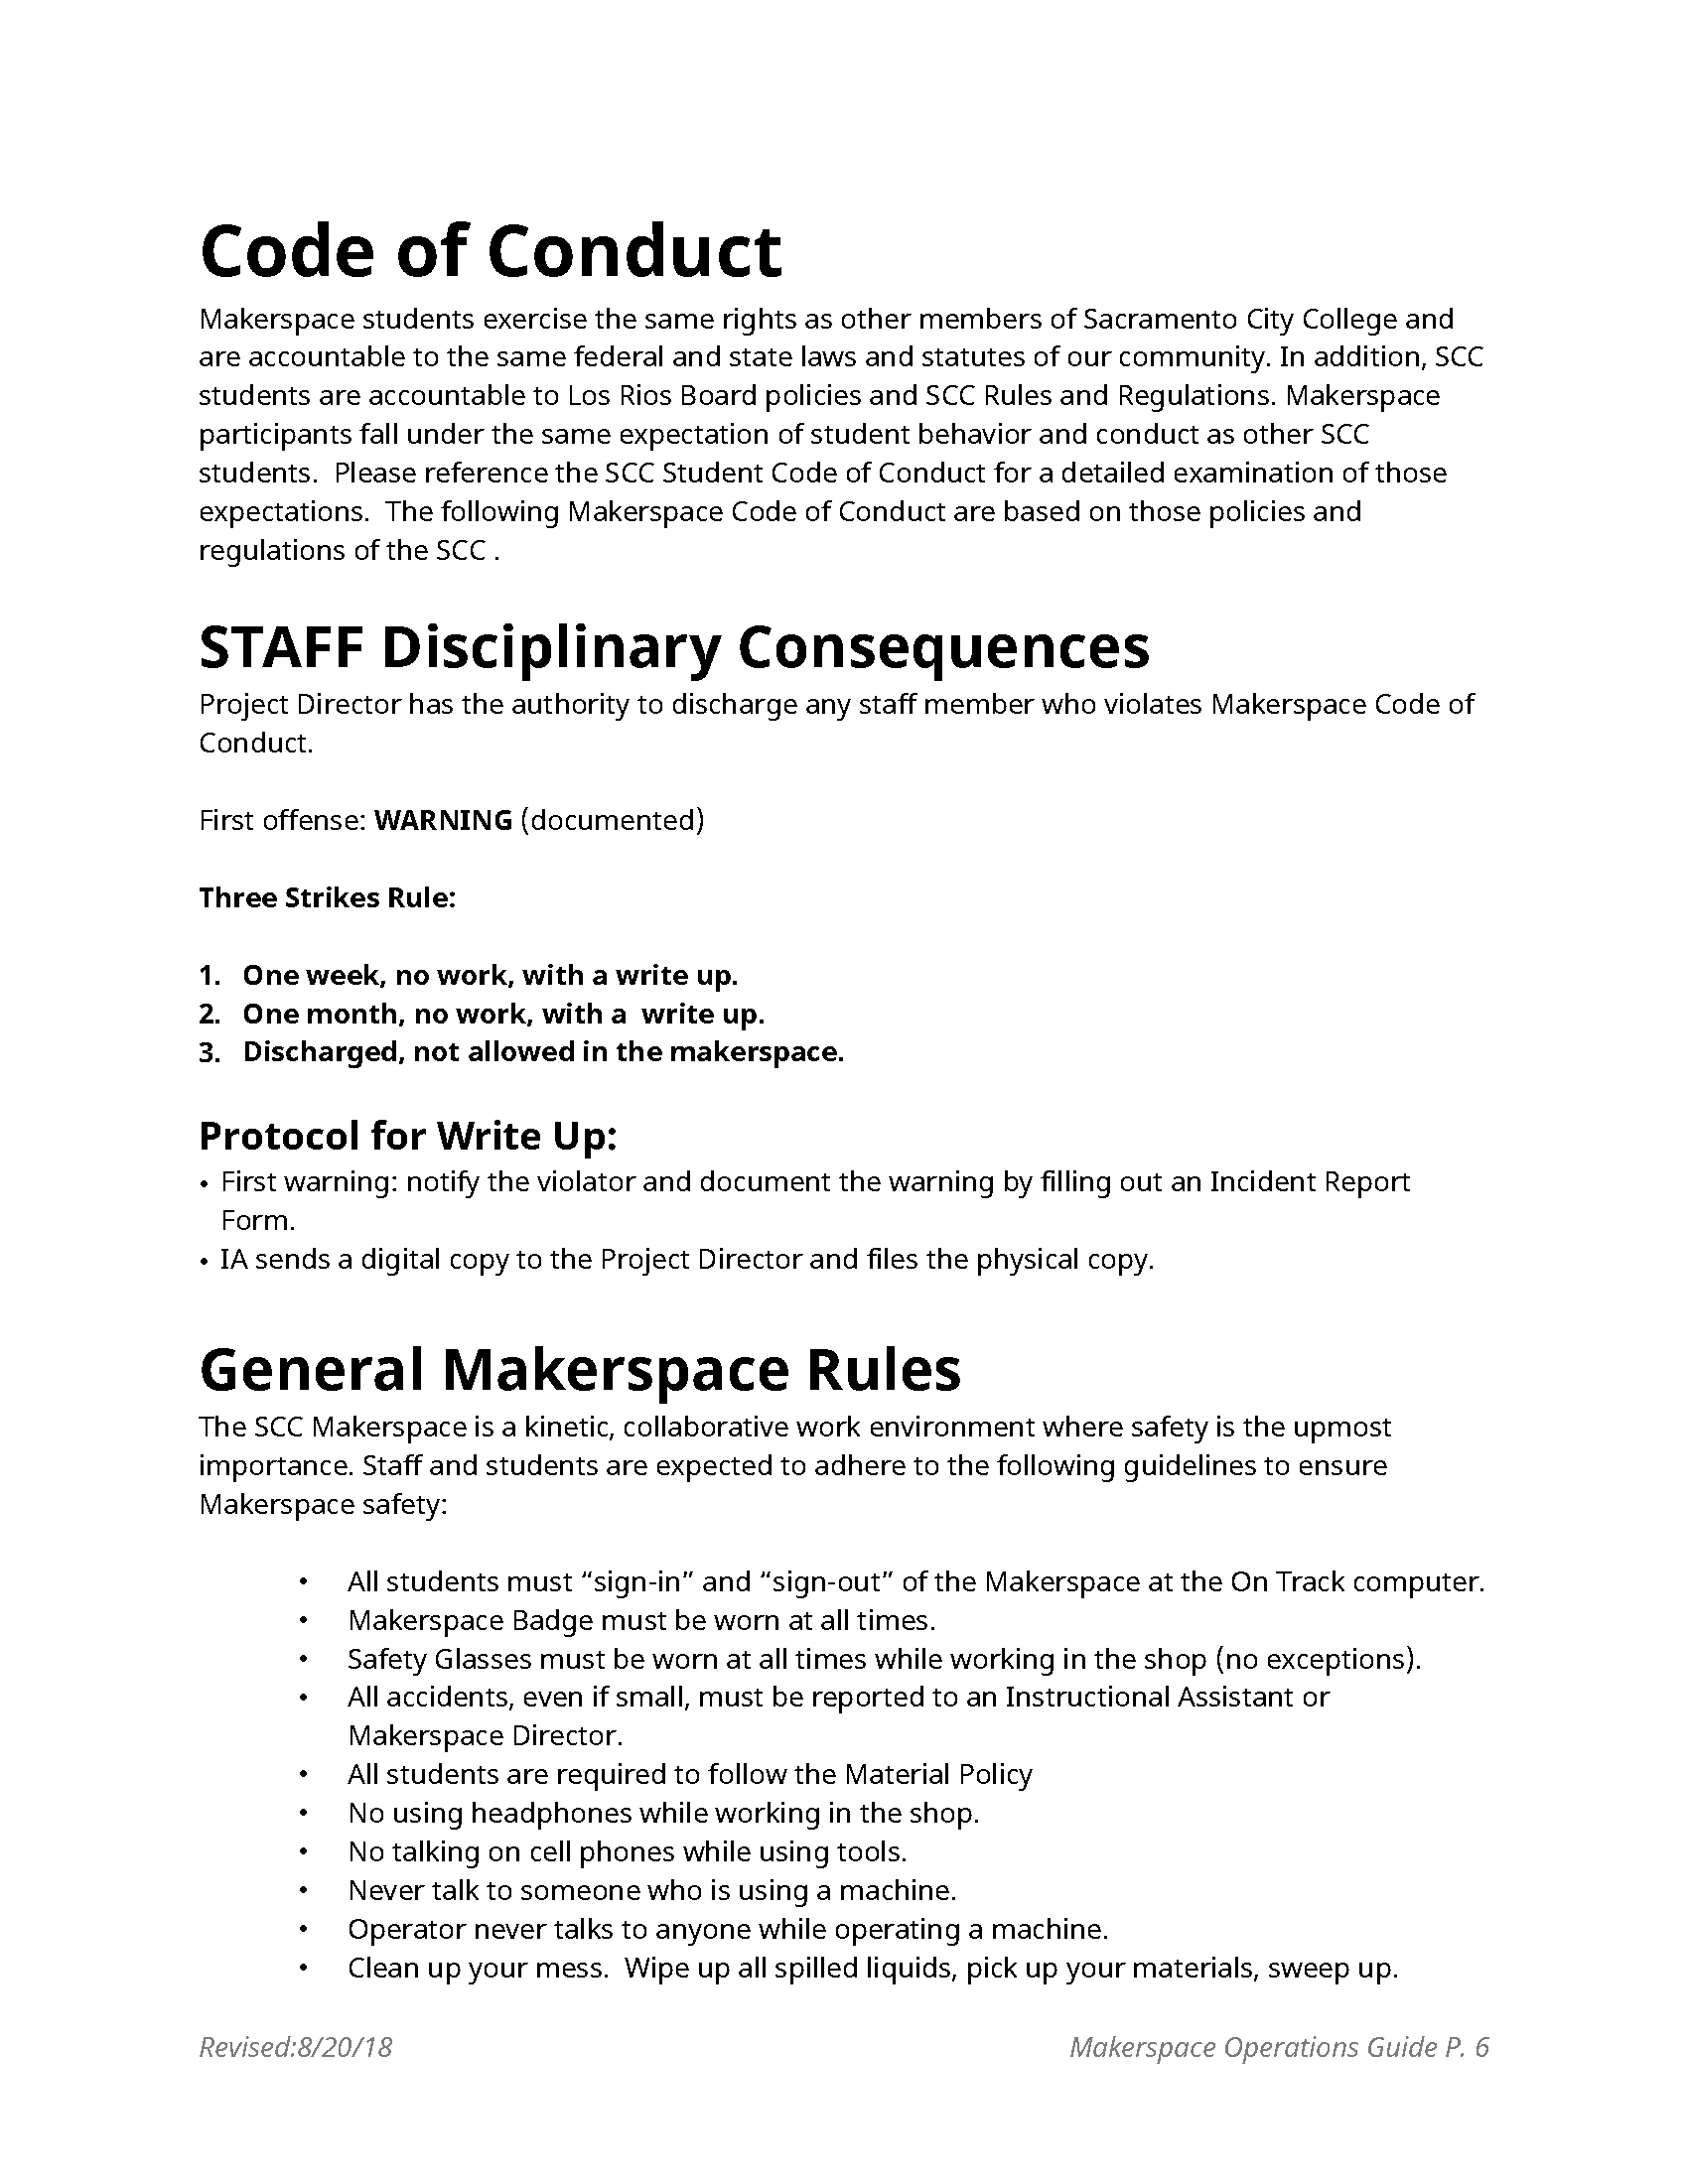 ms_ops_manual_8-20_Page_06.png